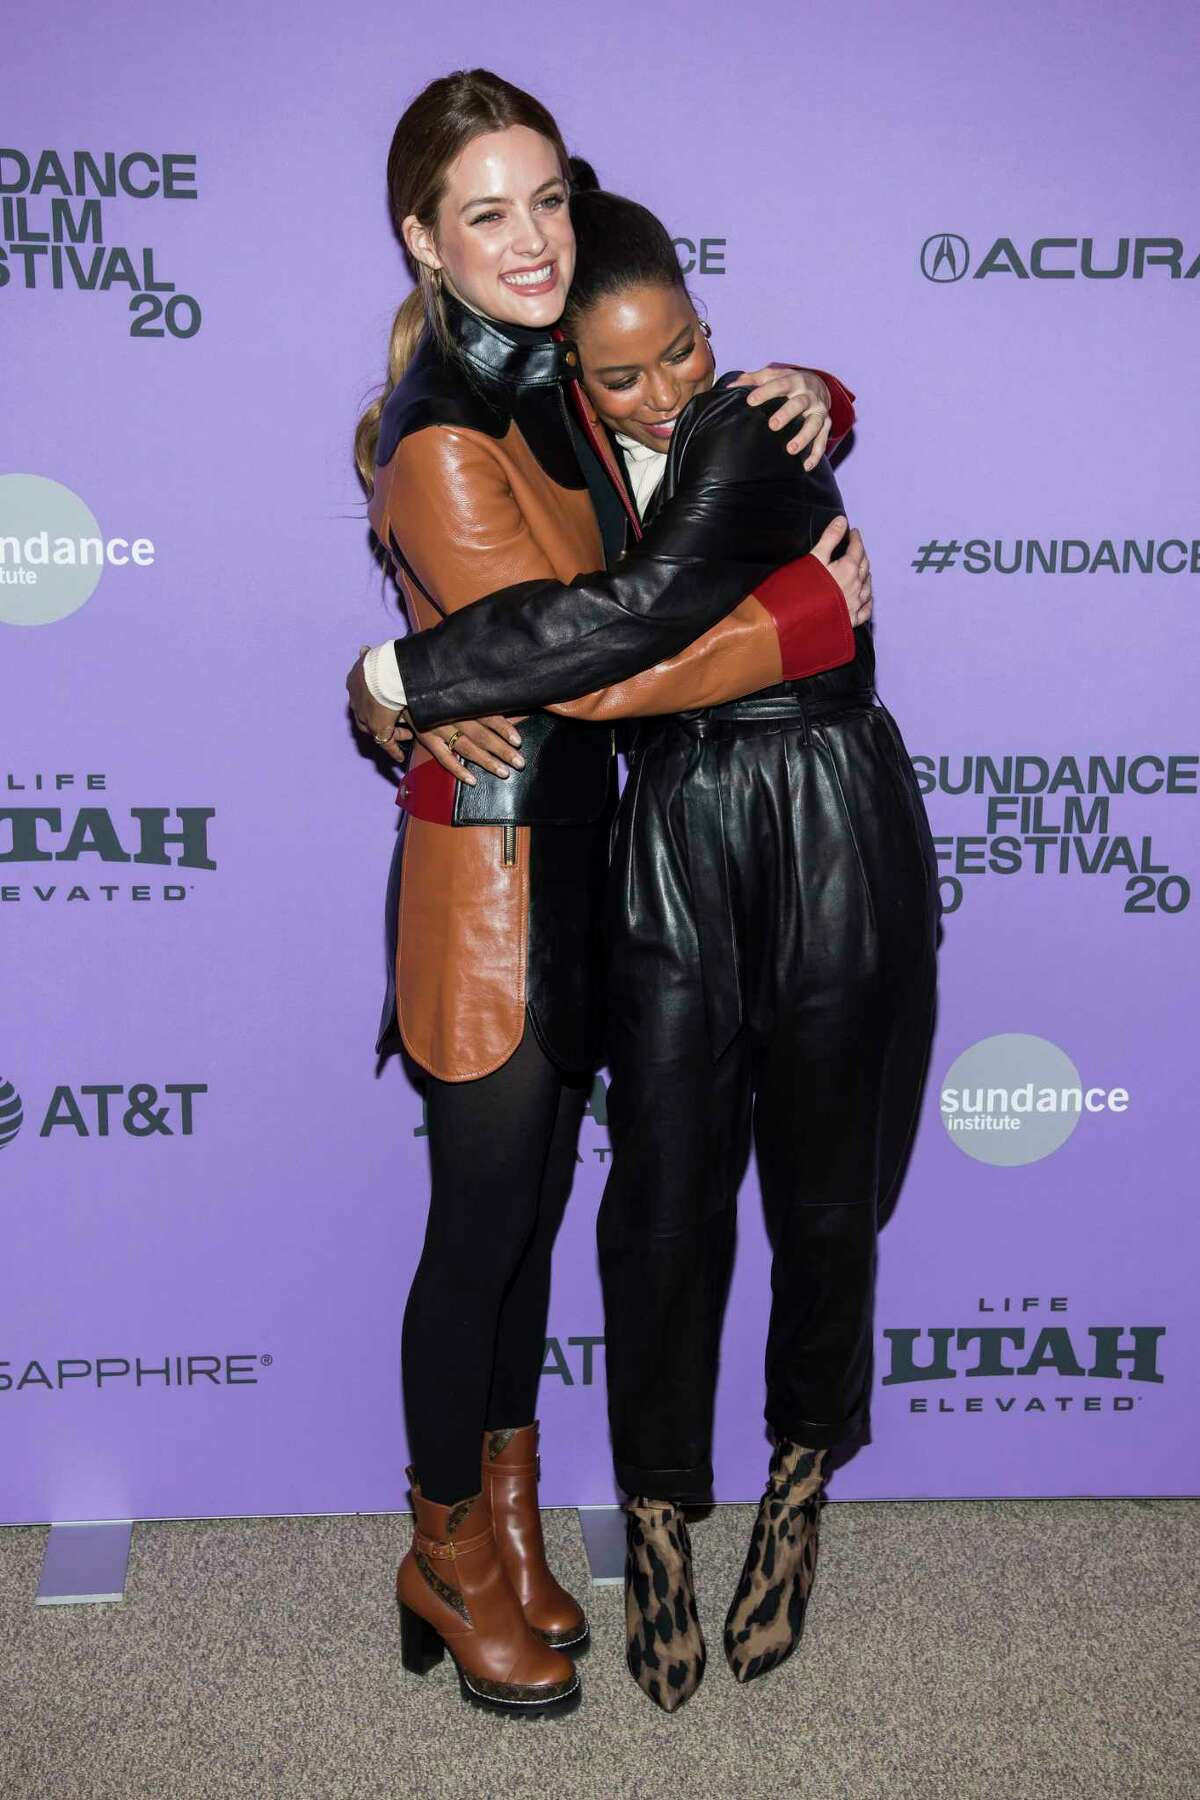 Riley Keough, left, and Taylour Paige attend the premiere of